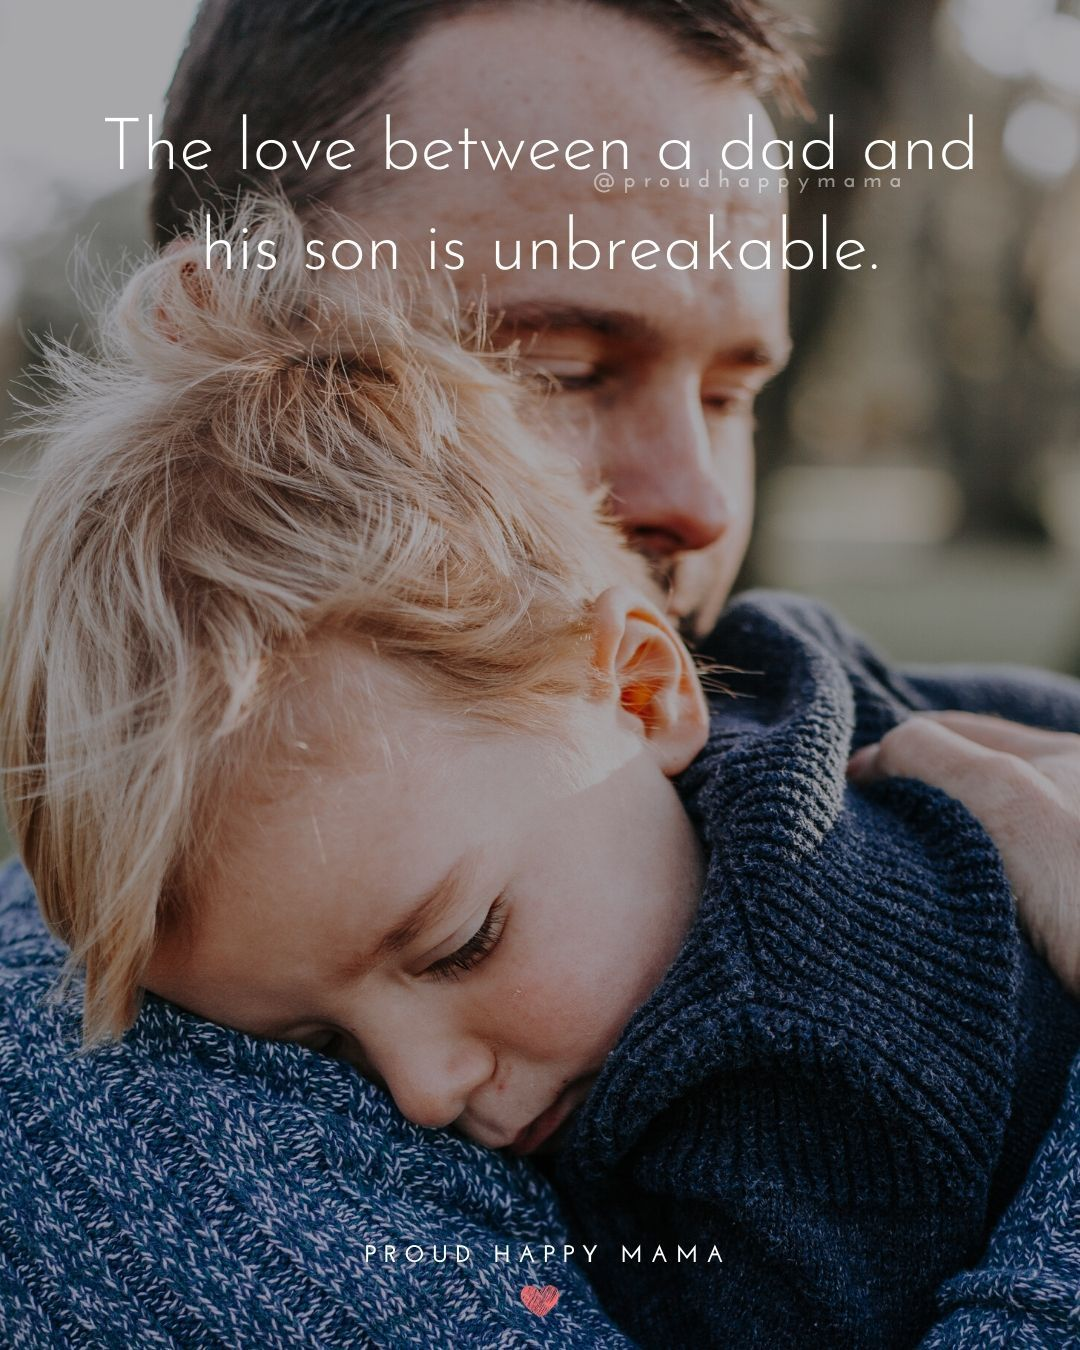 30 Best Father And Son Quotes And Sayings With Images In 2020 Father Son Quotes Fathers Day Inspirational Quotes Dad Quotes From Son